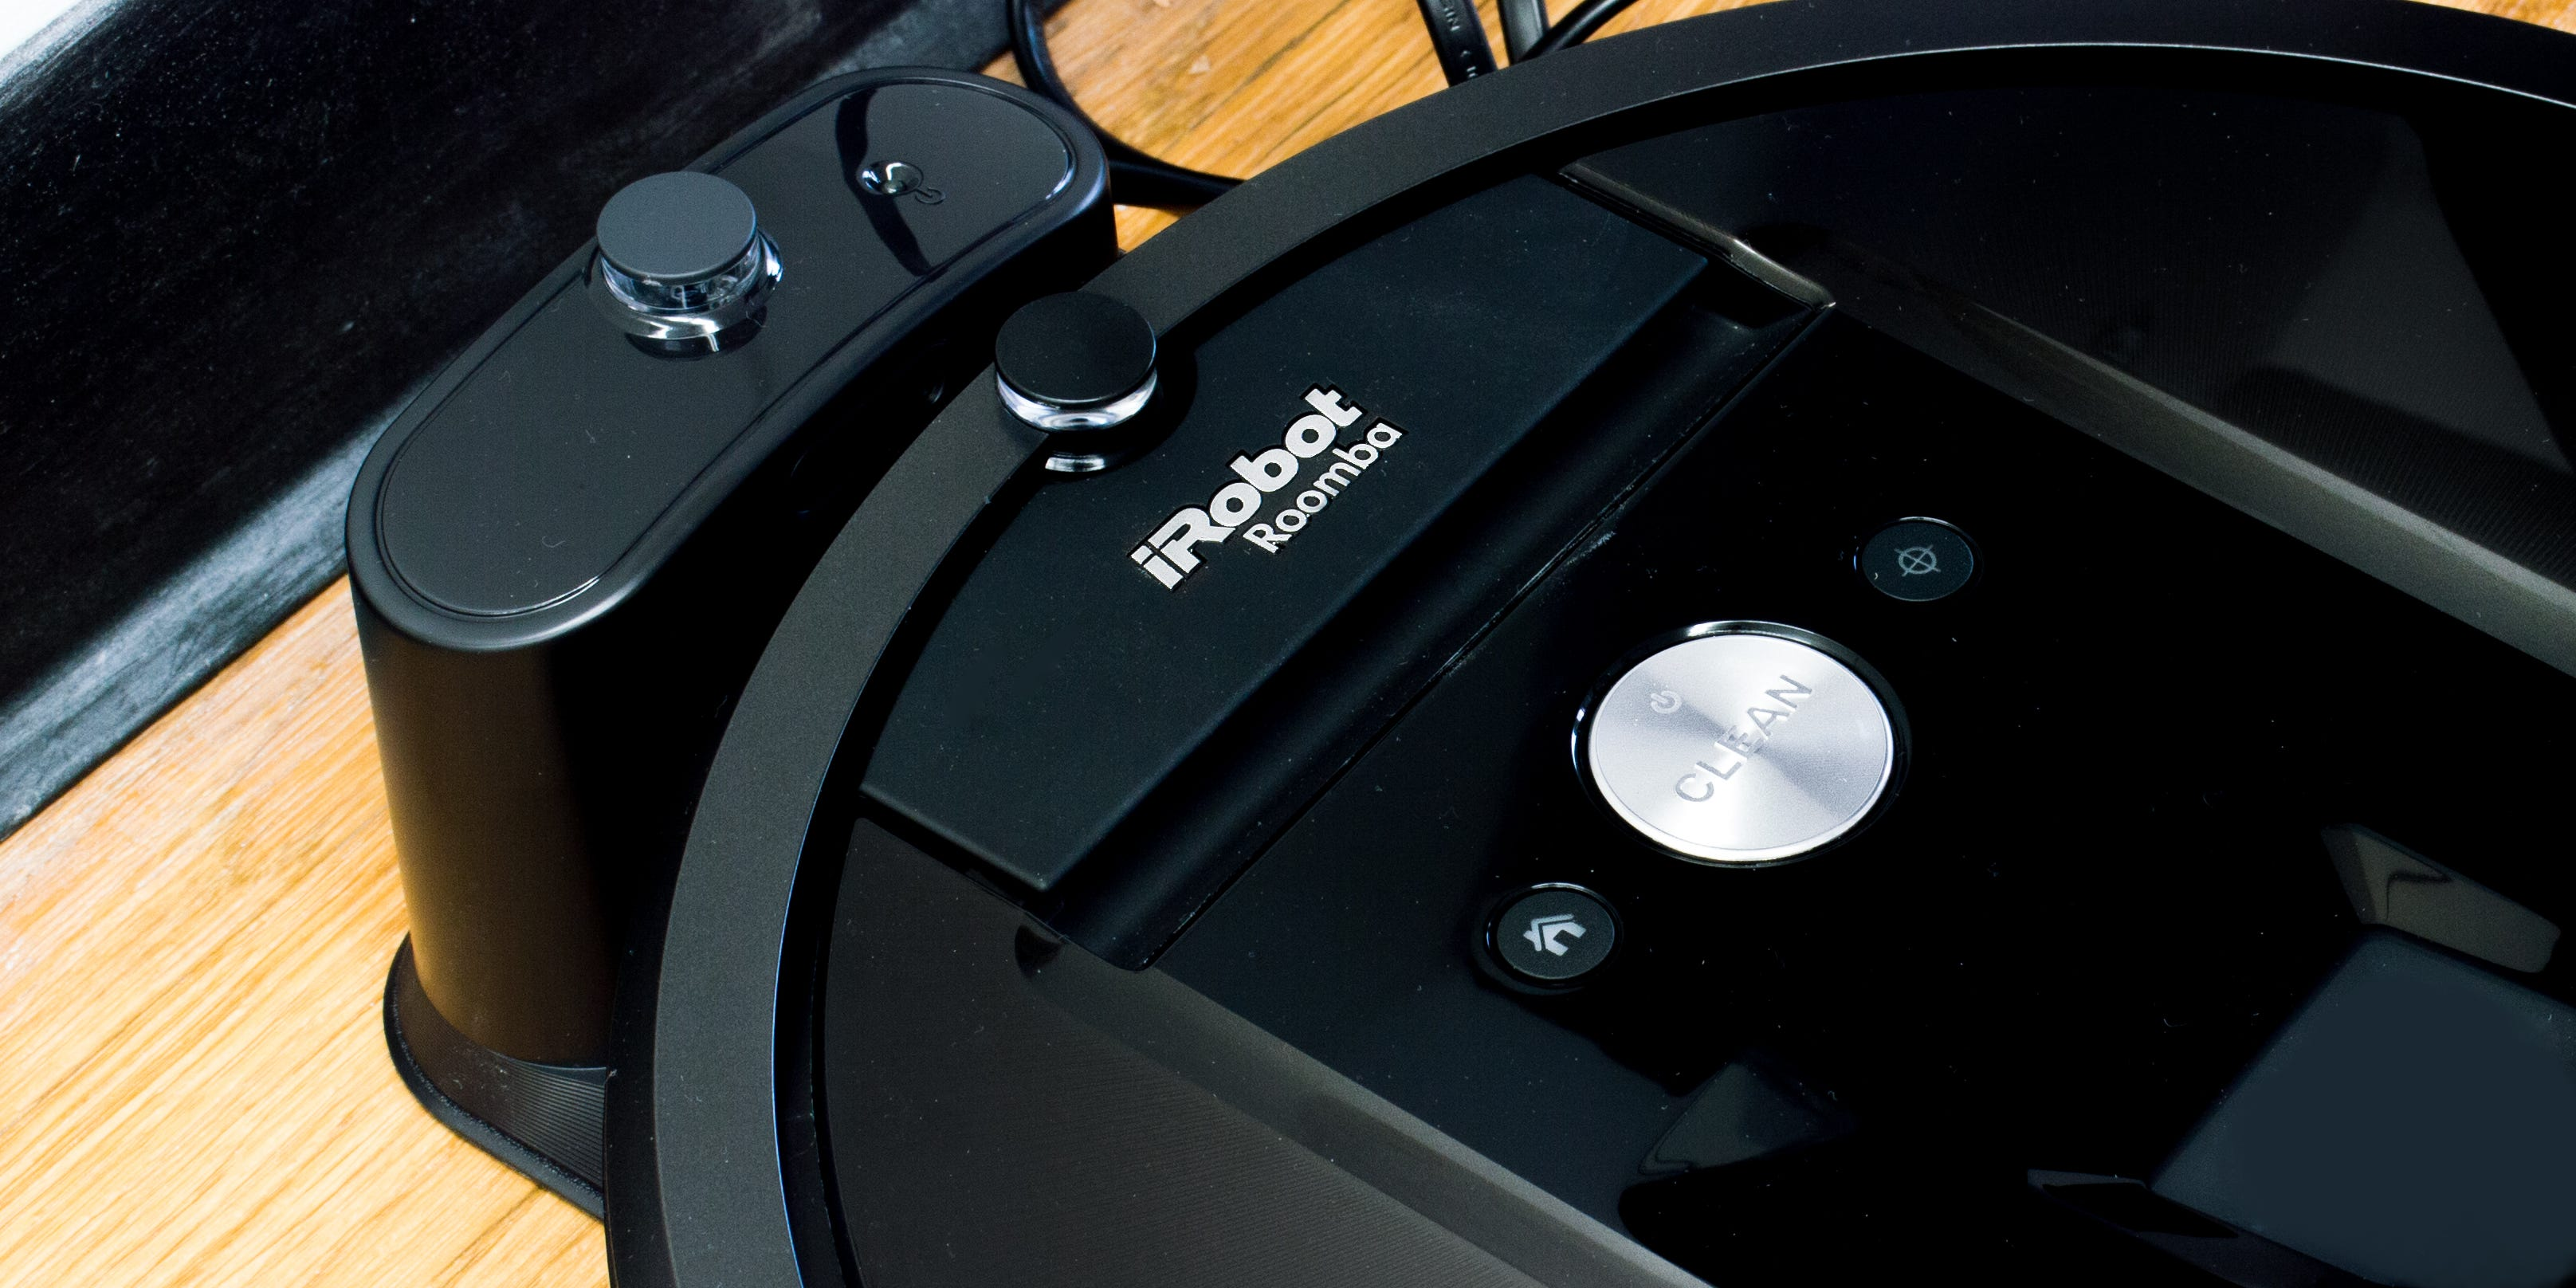 iRobot is currently offering amazing discounts on Roombas